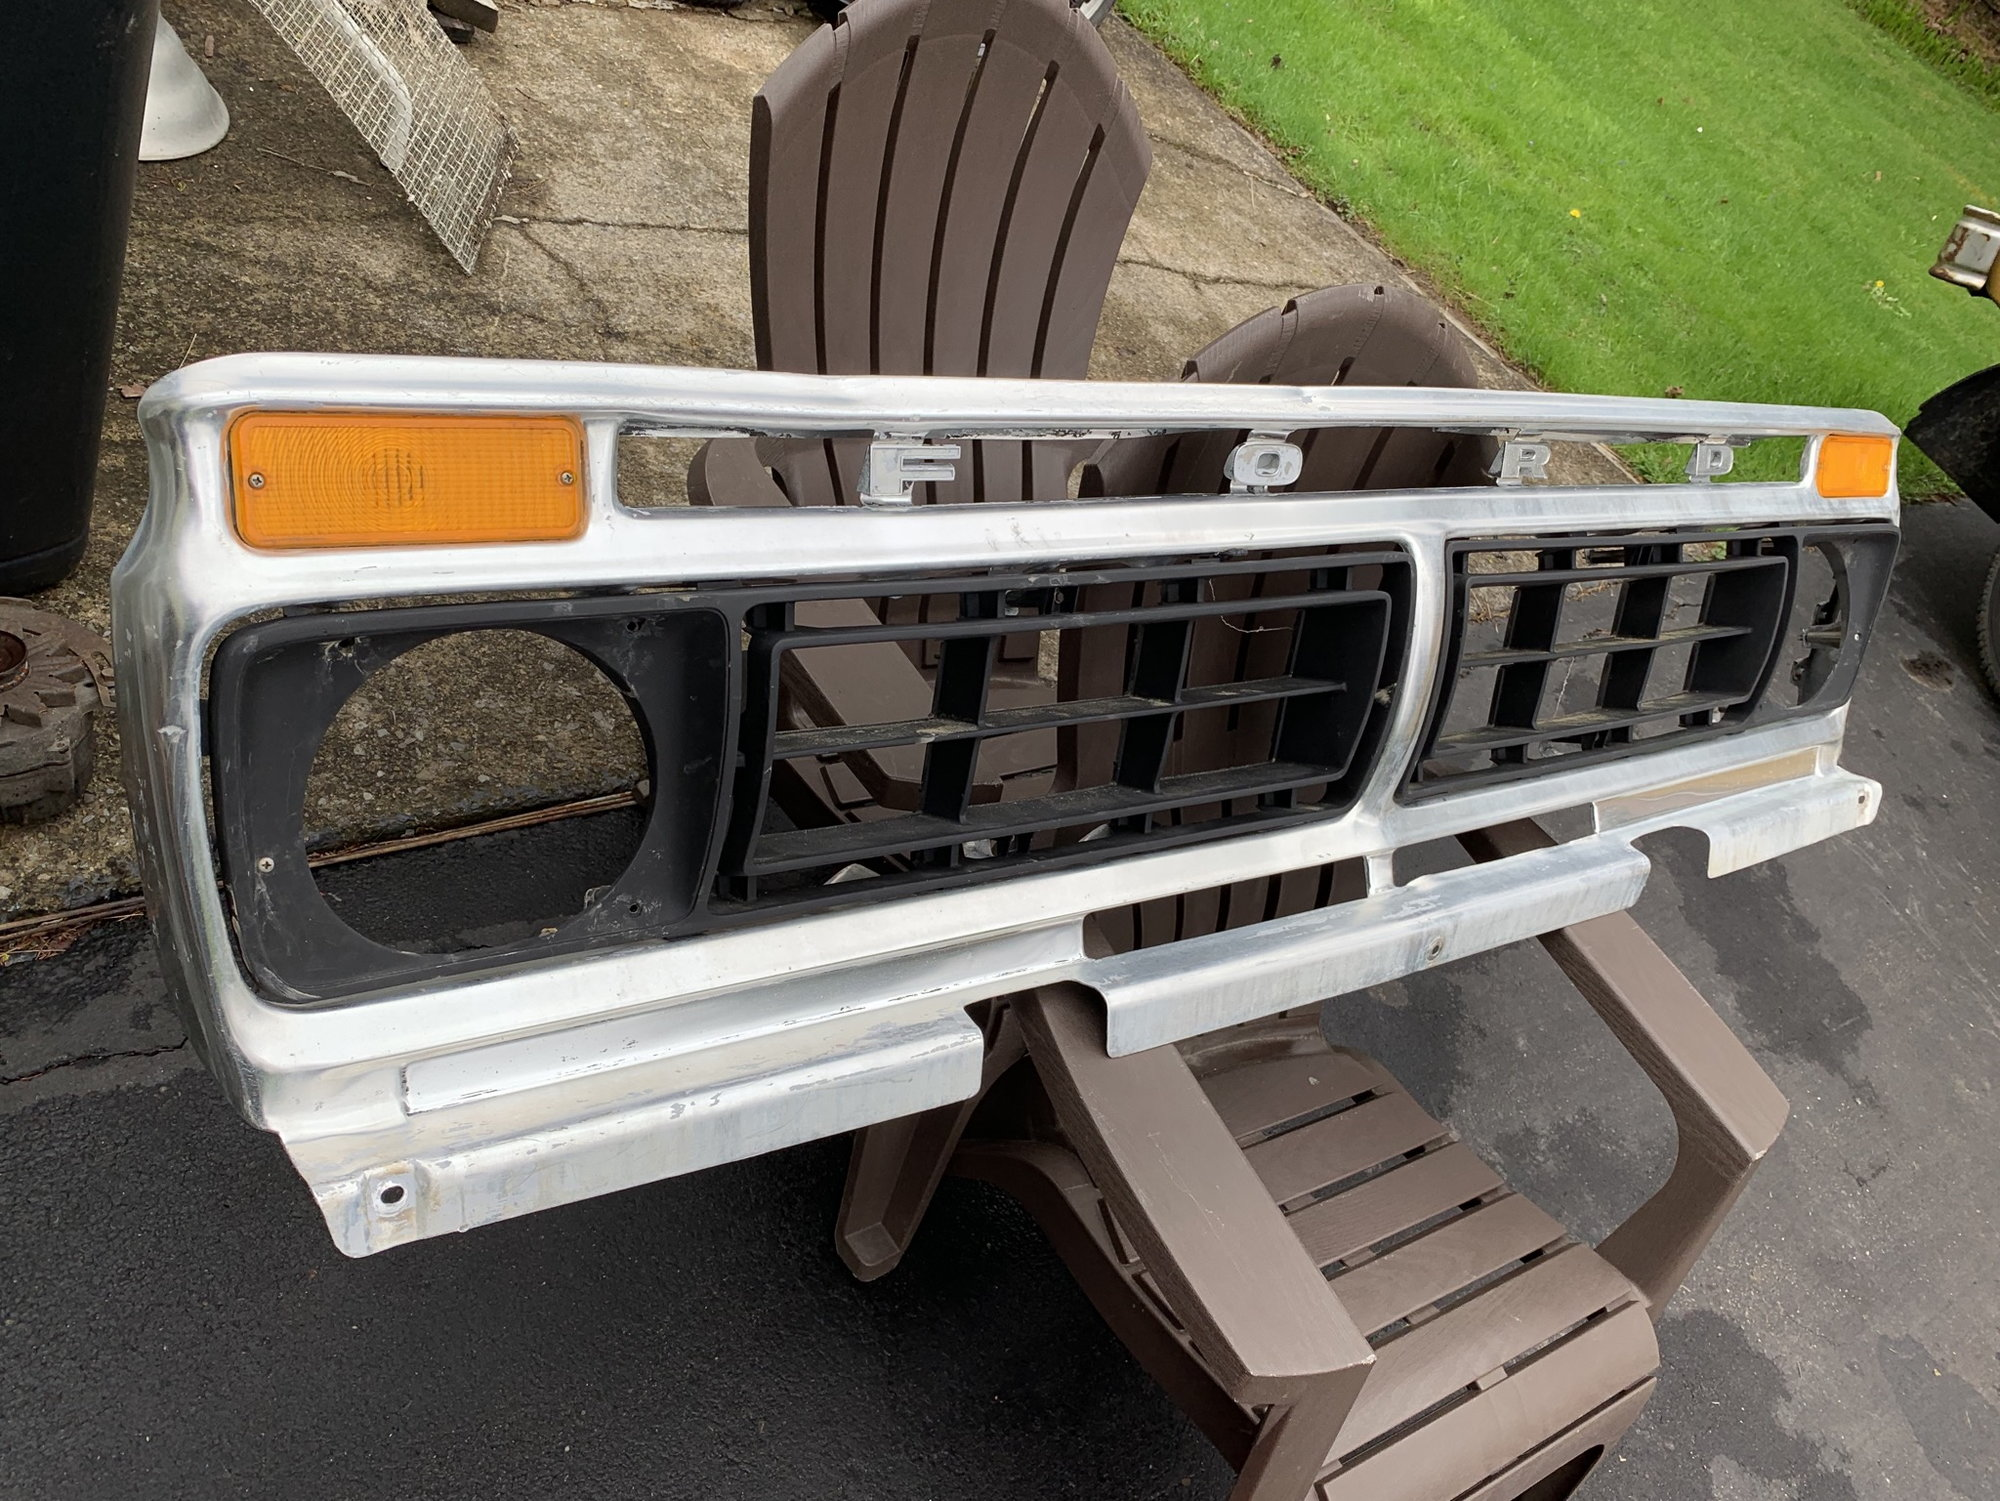 73 79 Ford Truck Parts Body Parts Interior Drivetrain Engines Transmissions Accessories Etc Ford Truck Enthusiasts Forums